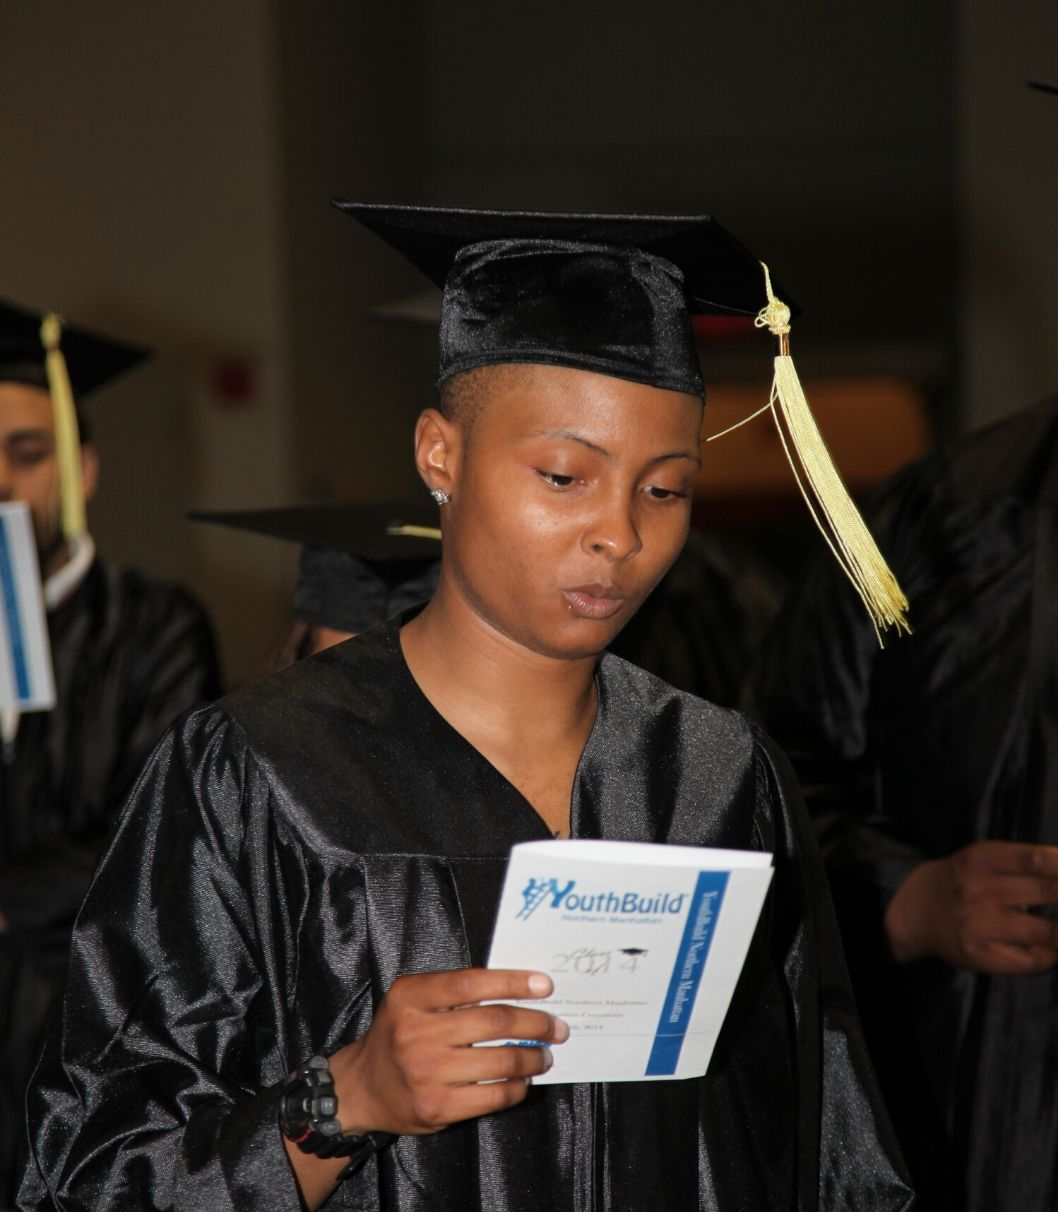 A young Black person in a Black cap and gown with gold tassels reads a white and blue program